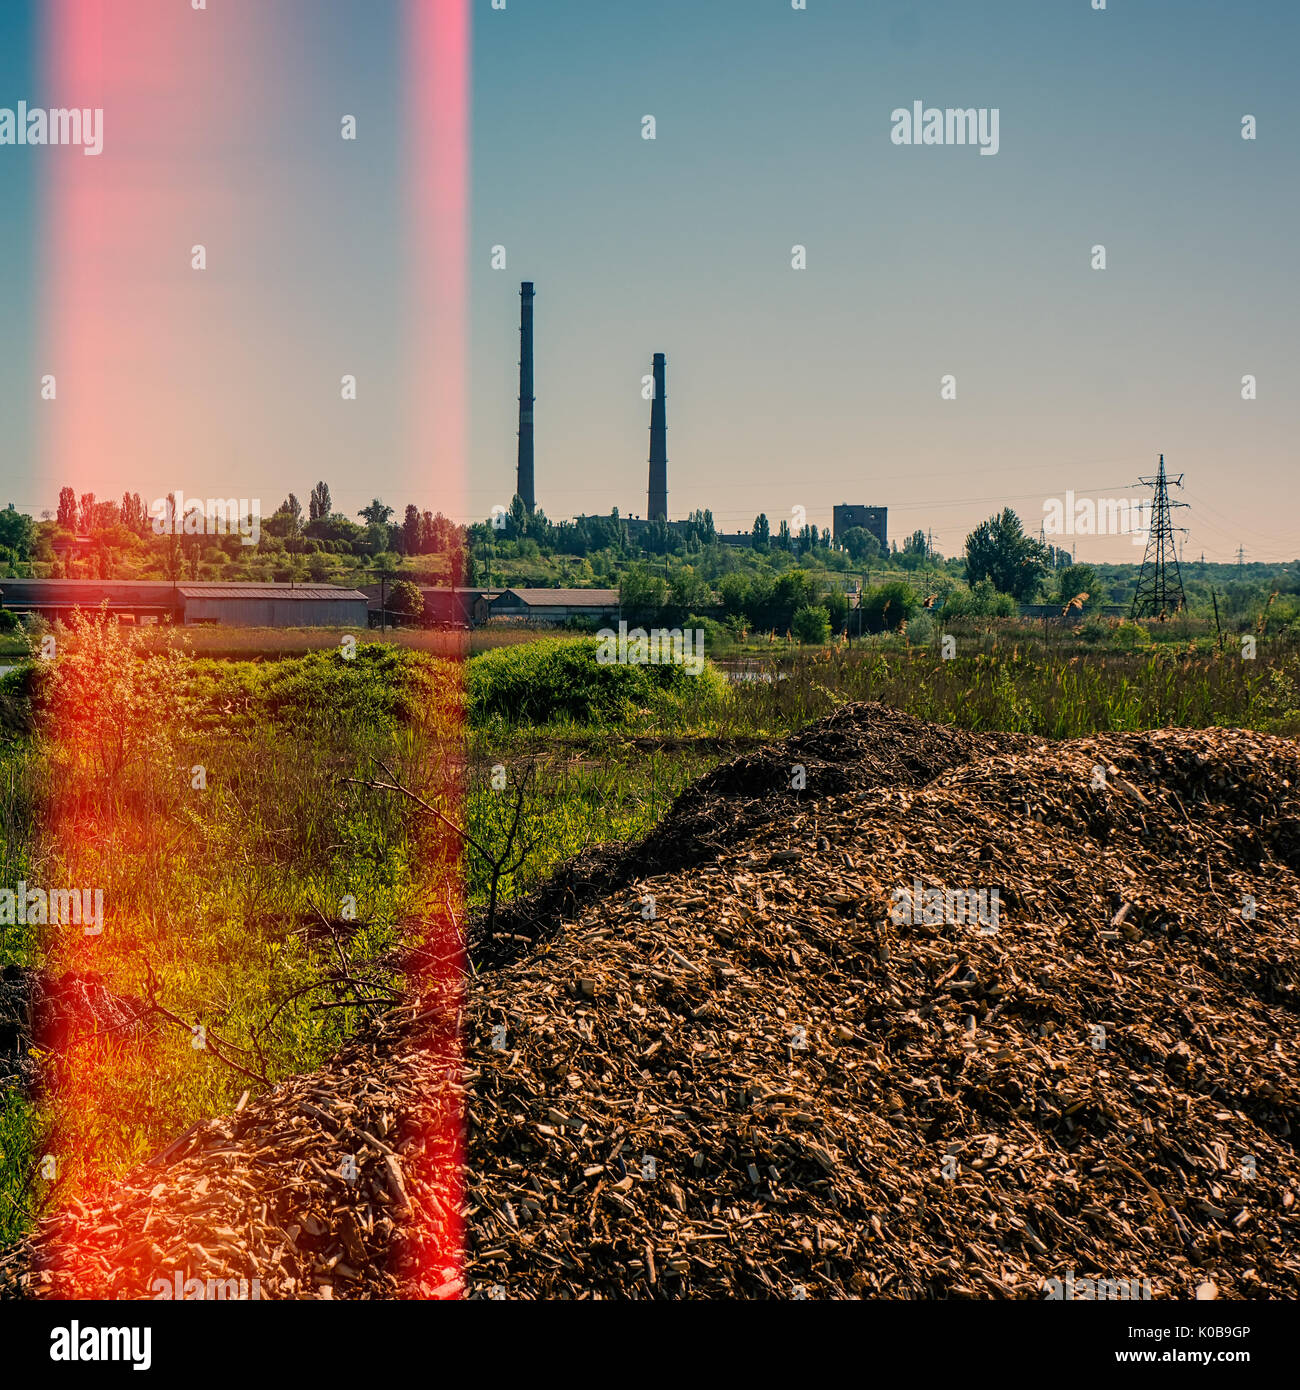 Plant for the enrichment of iron ore and industrial waste and debris, environmental pollution - Stock Image